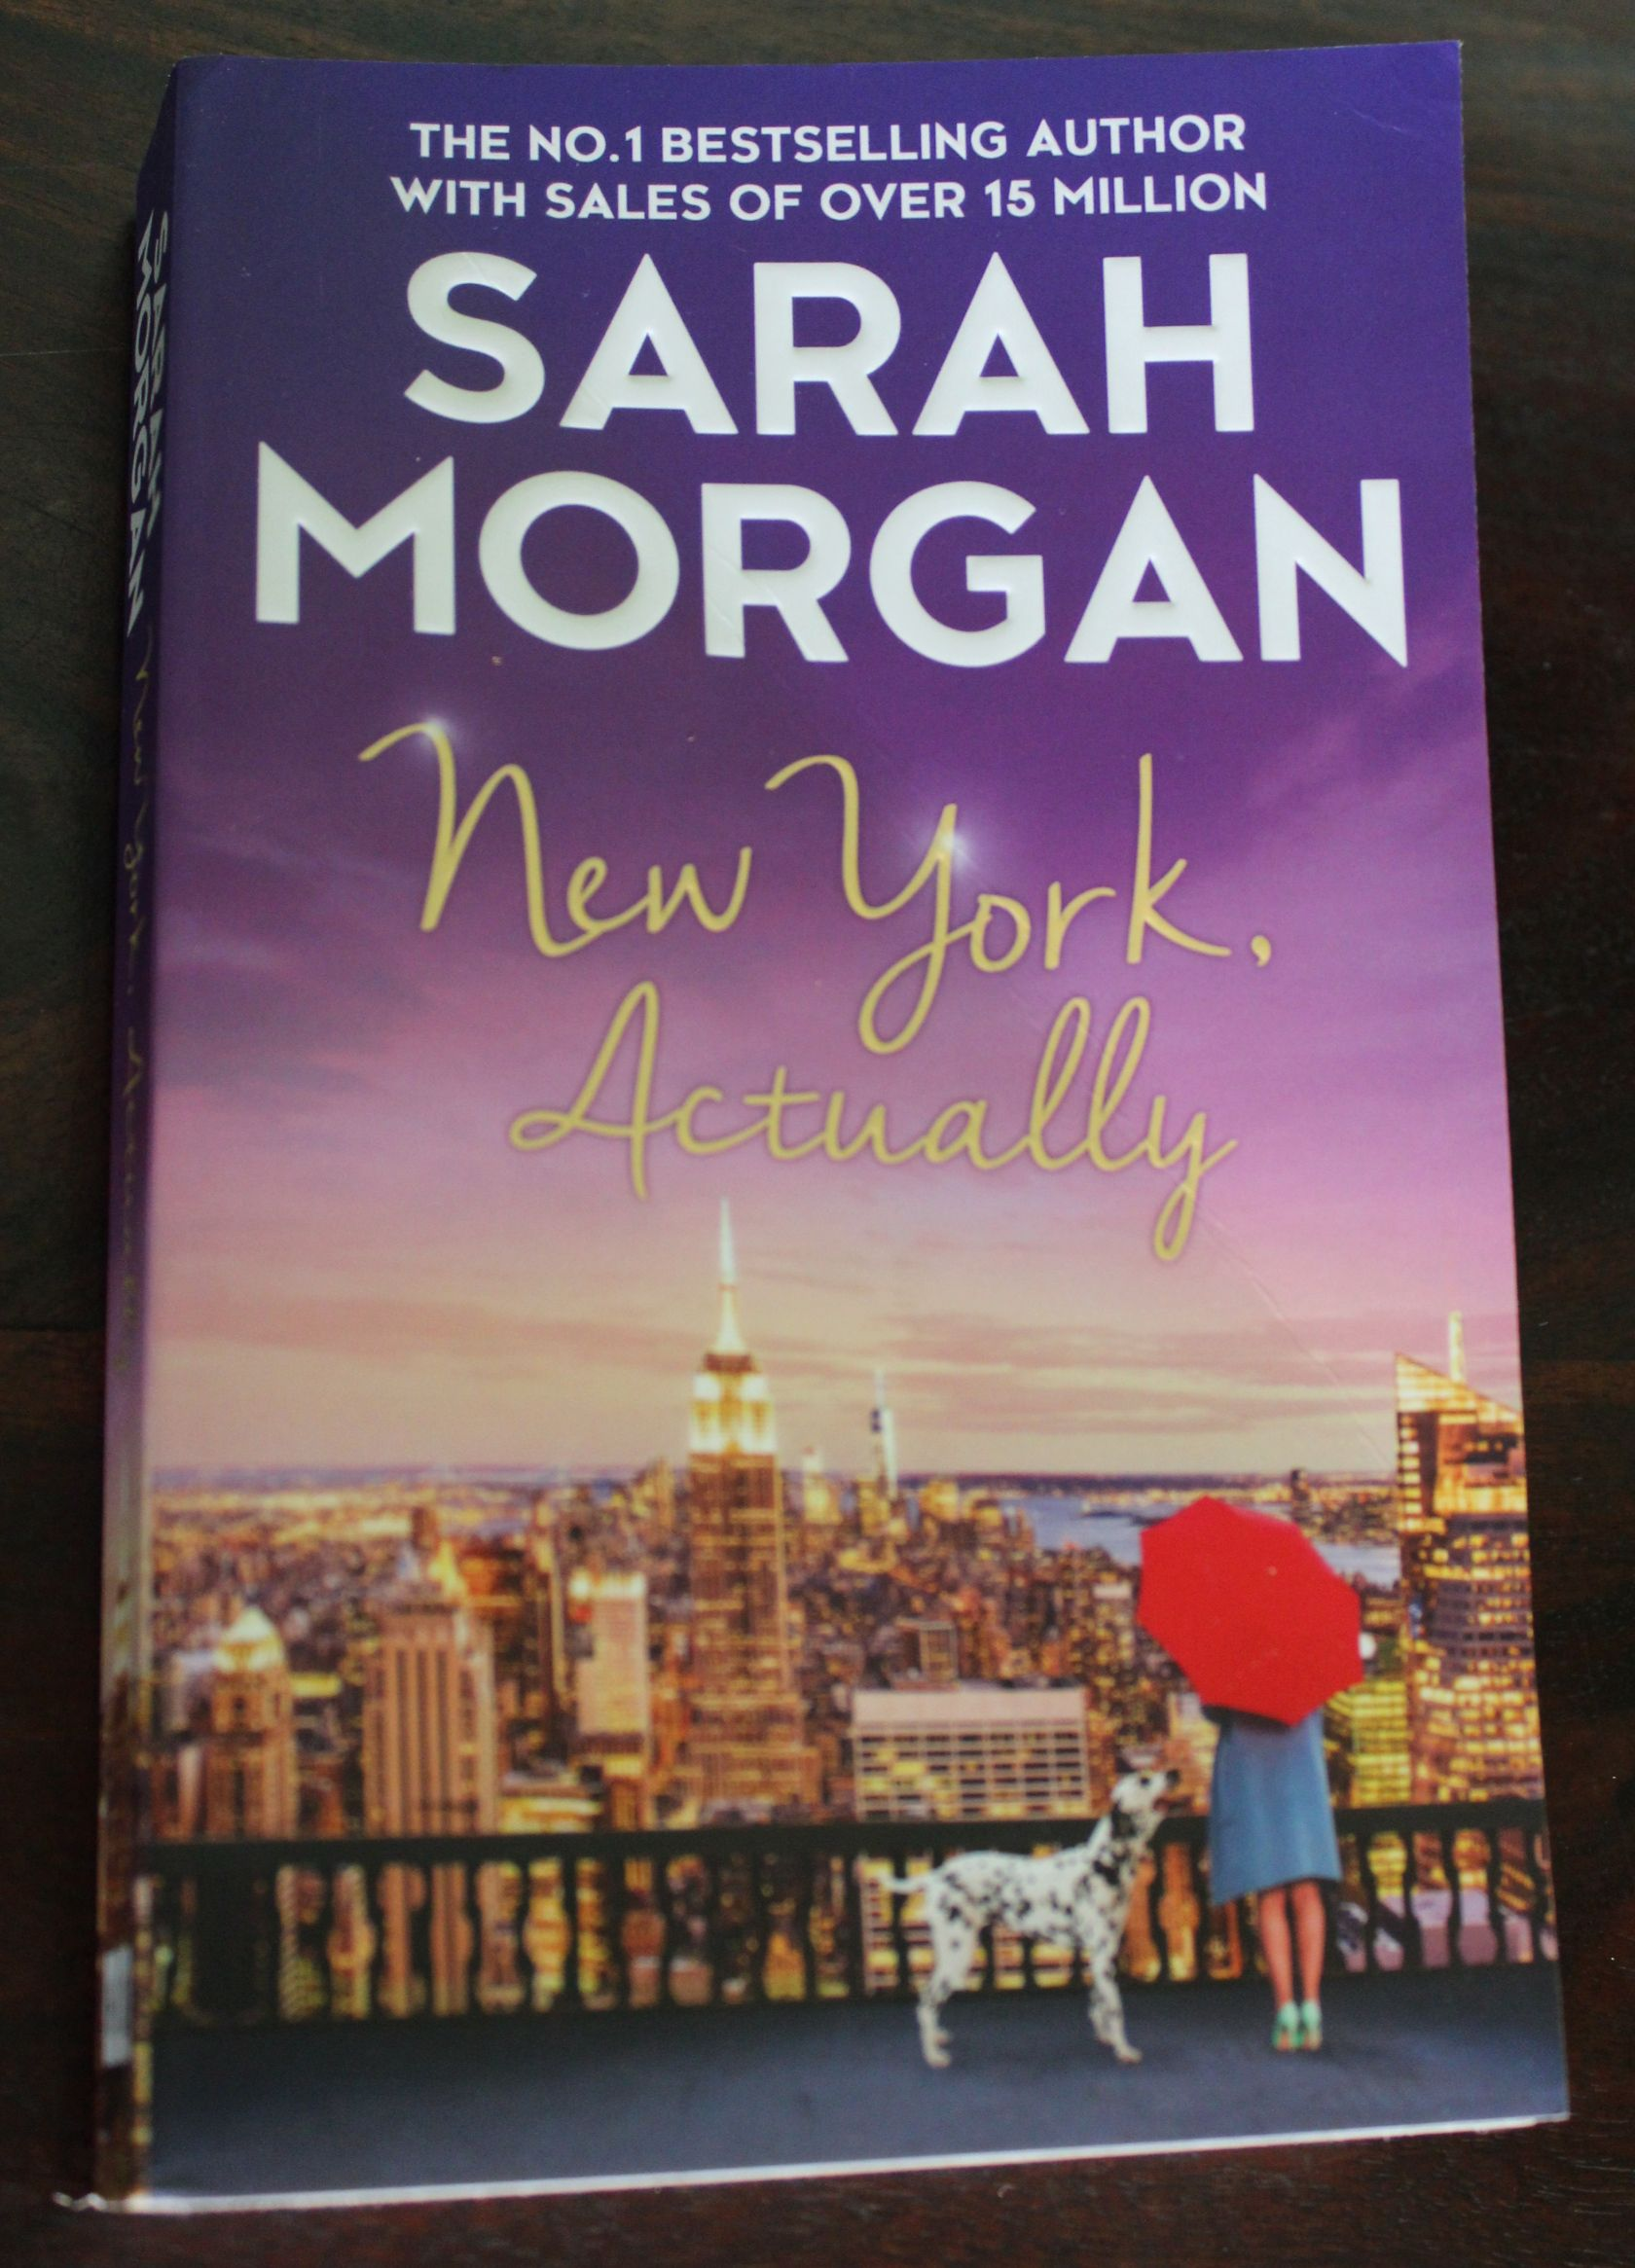 New York, Actually By SARAH The plot of the